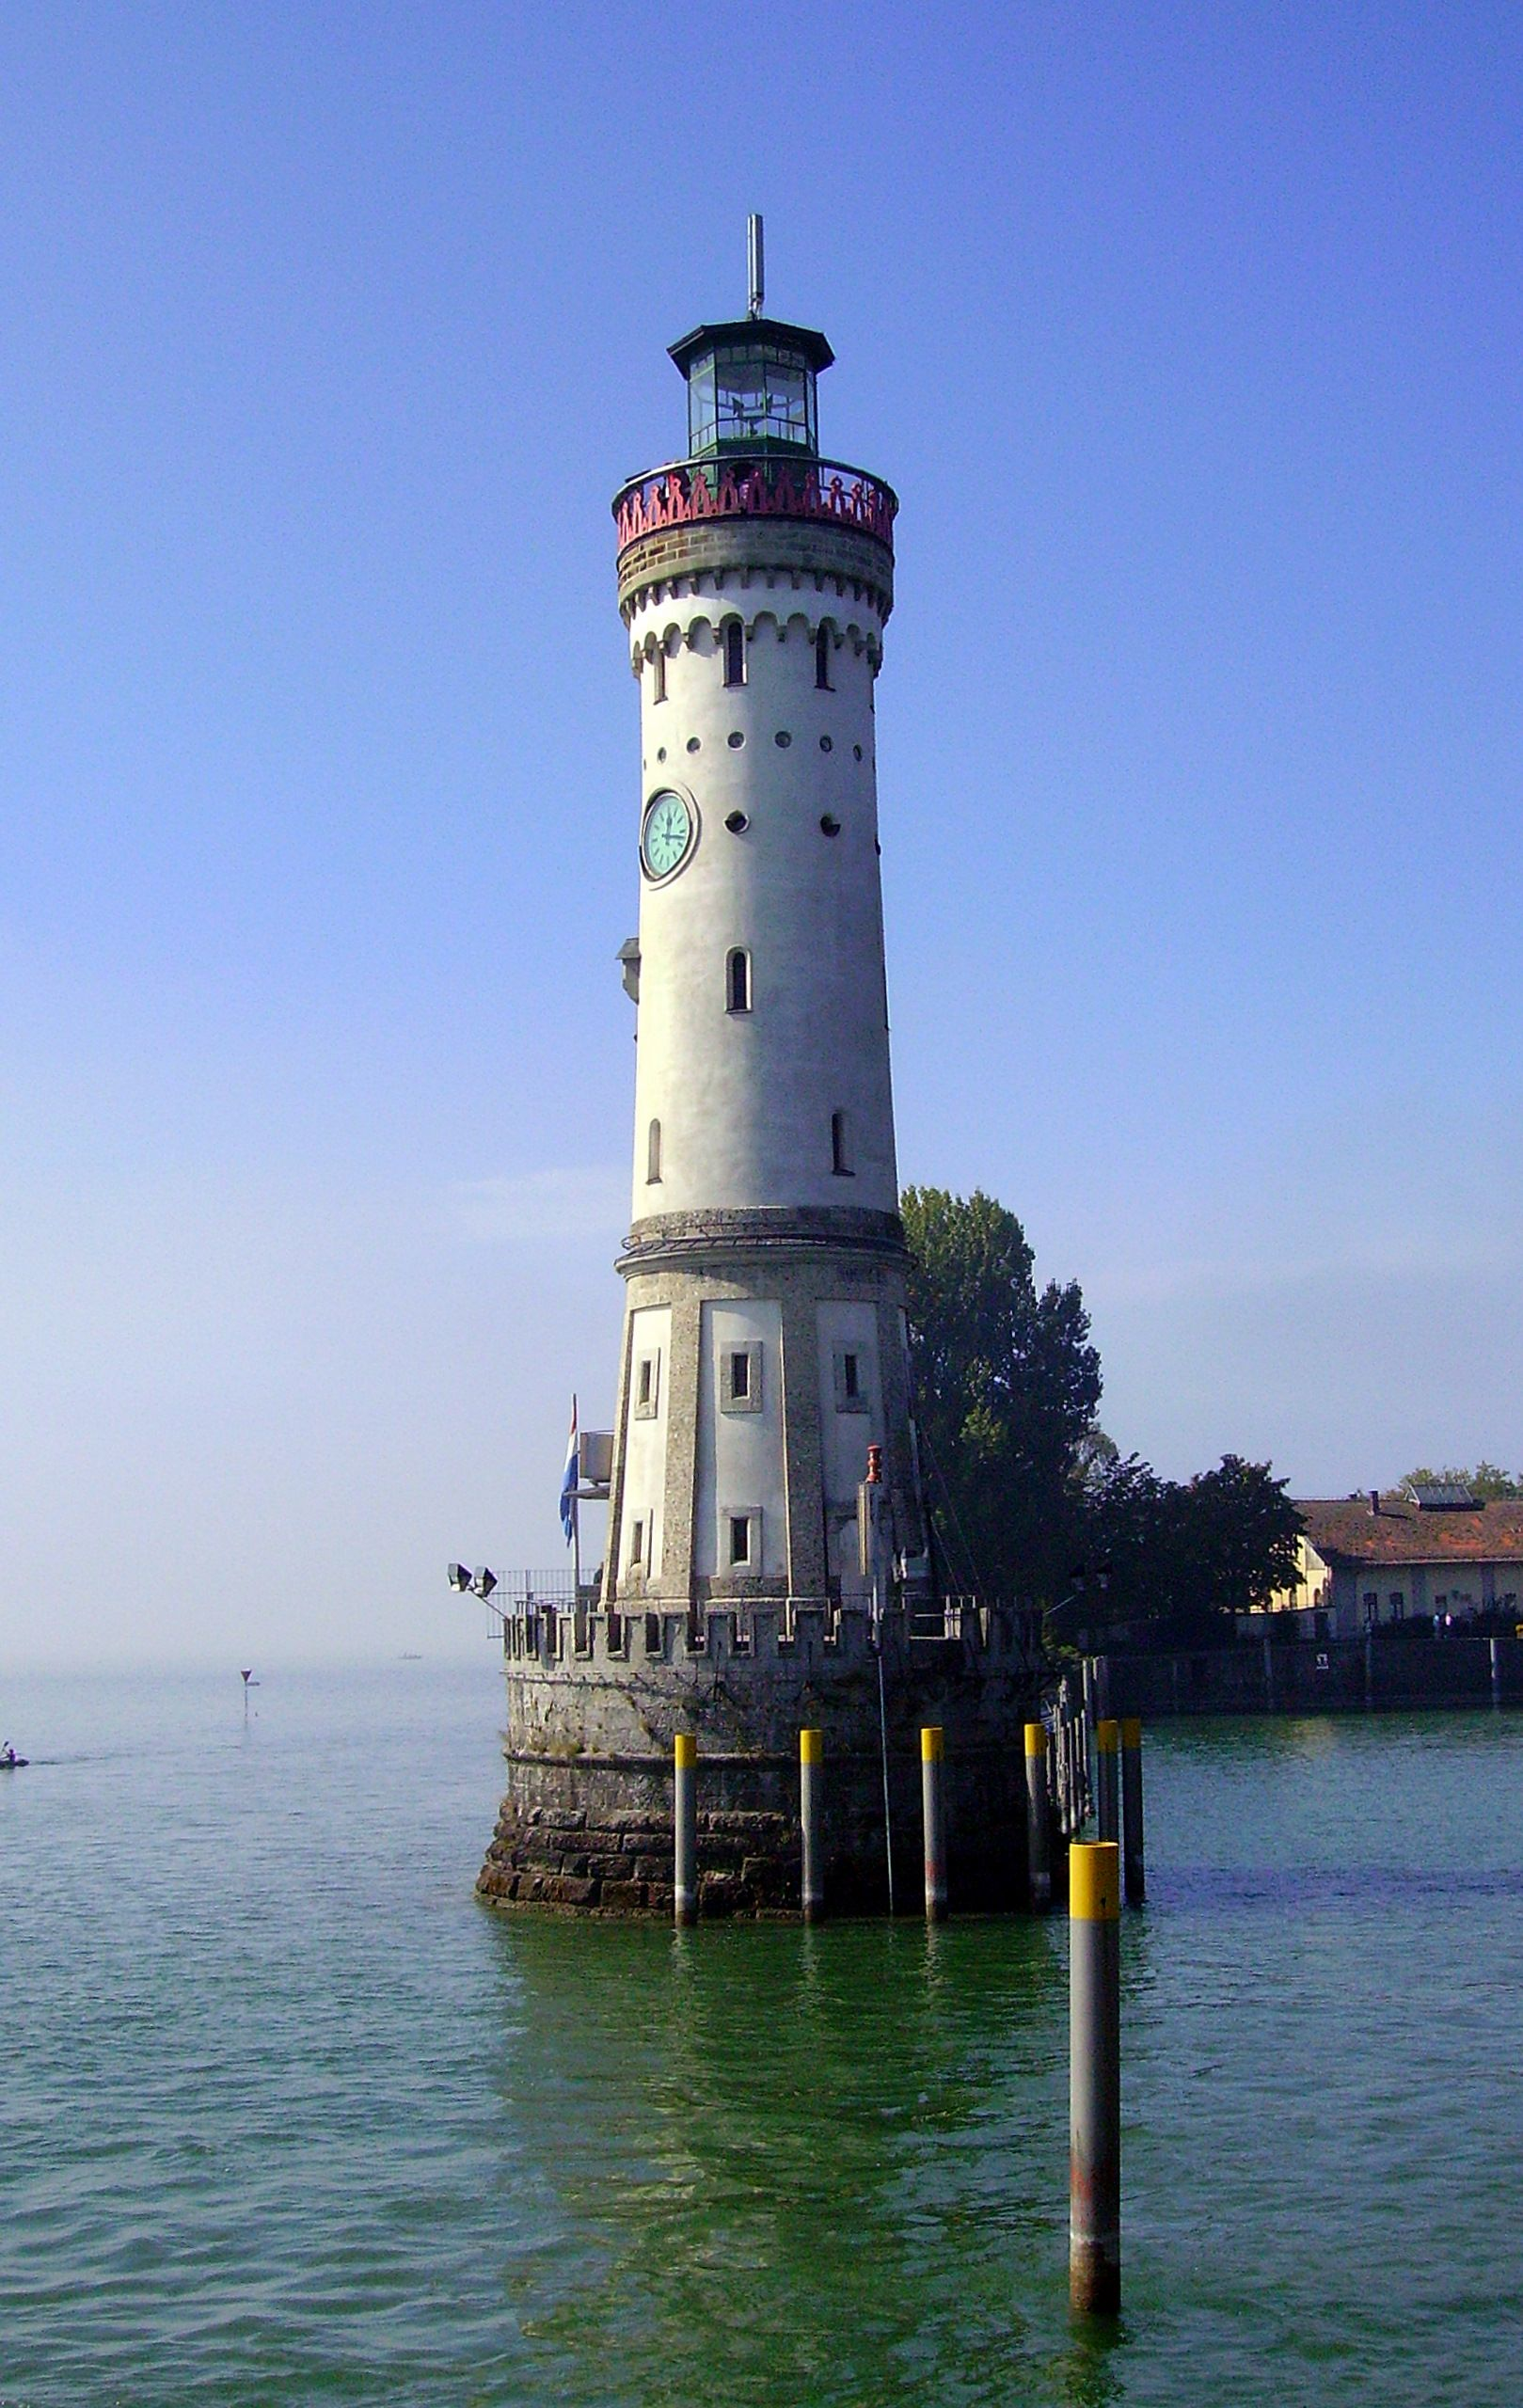 from Hudson gay visitors to konstanz